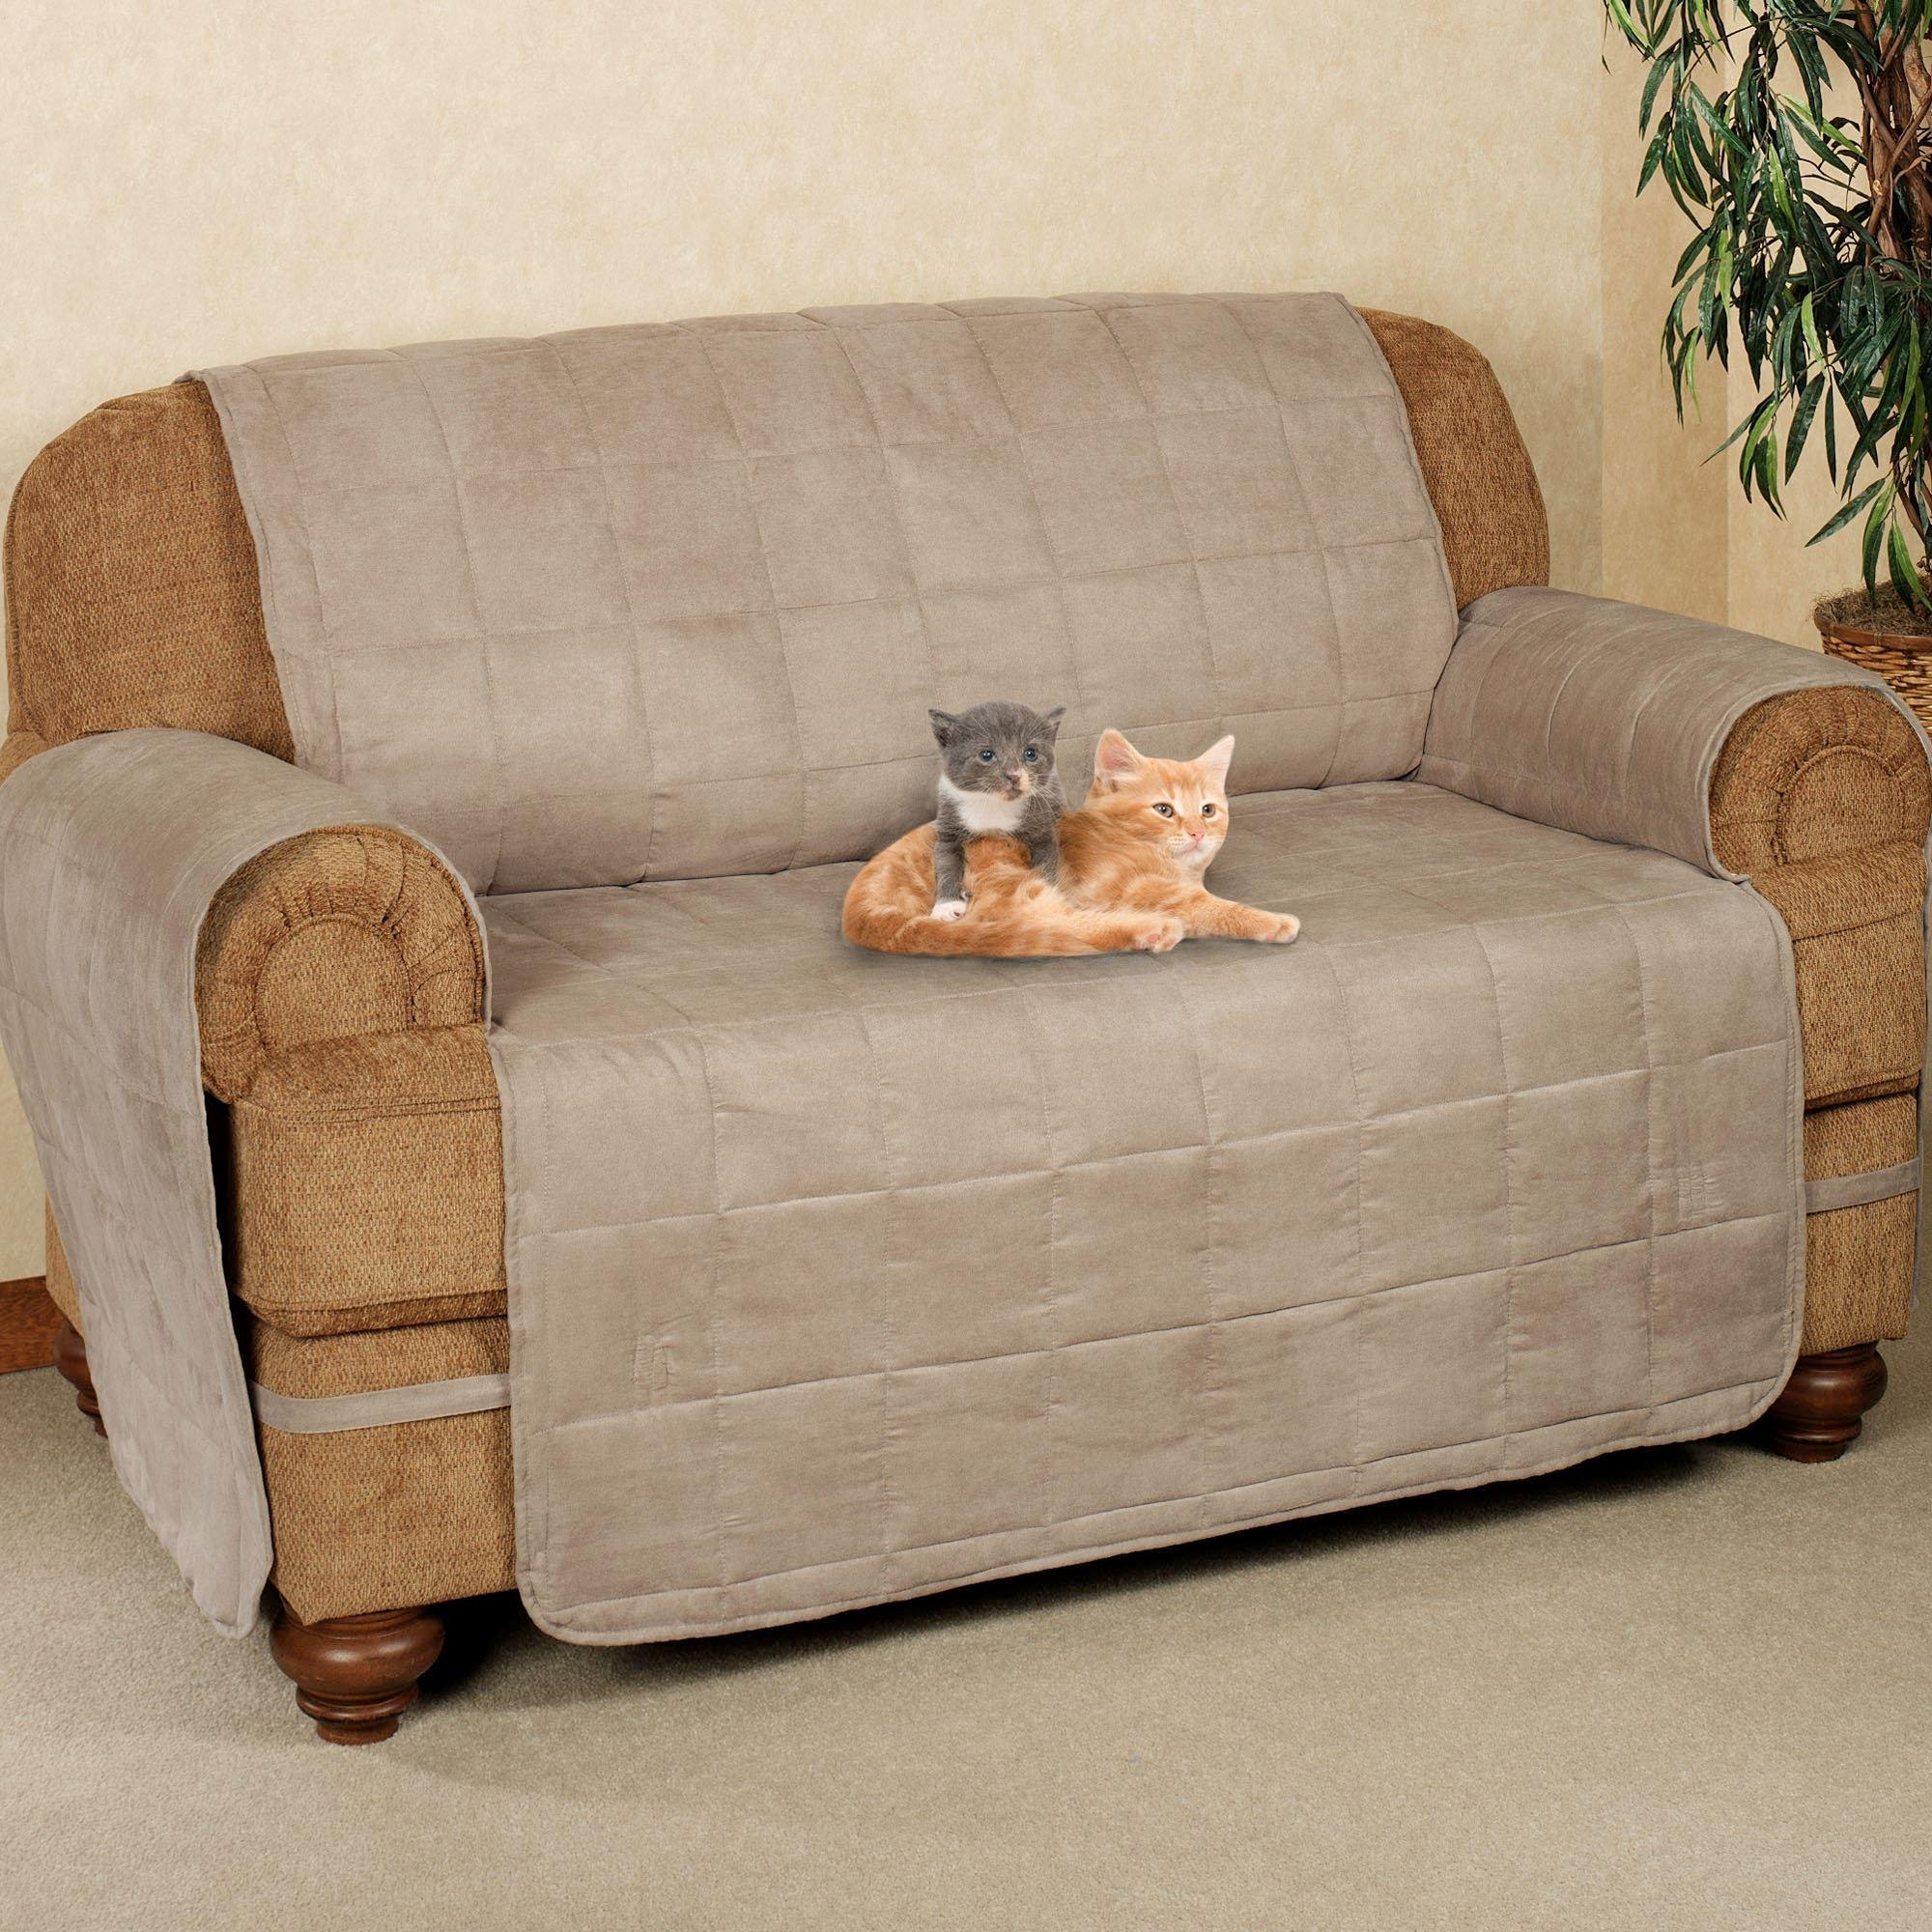 Sofas Center : Cat Proof Material For Sofa Materialcat Ikeacat Intended For Cat Proof Sofas (Image 15 of 20)